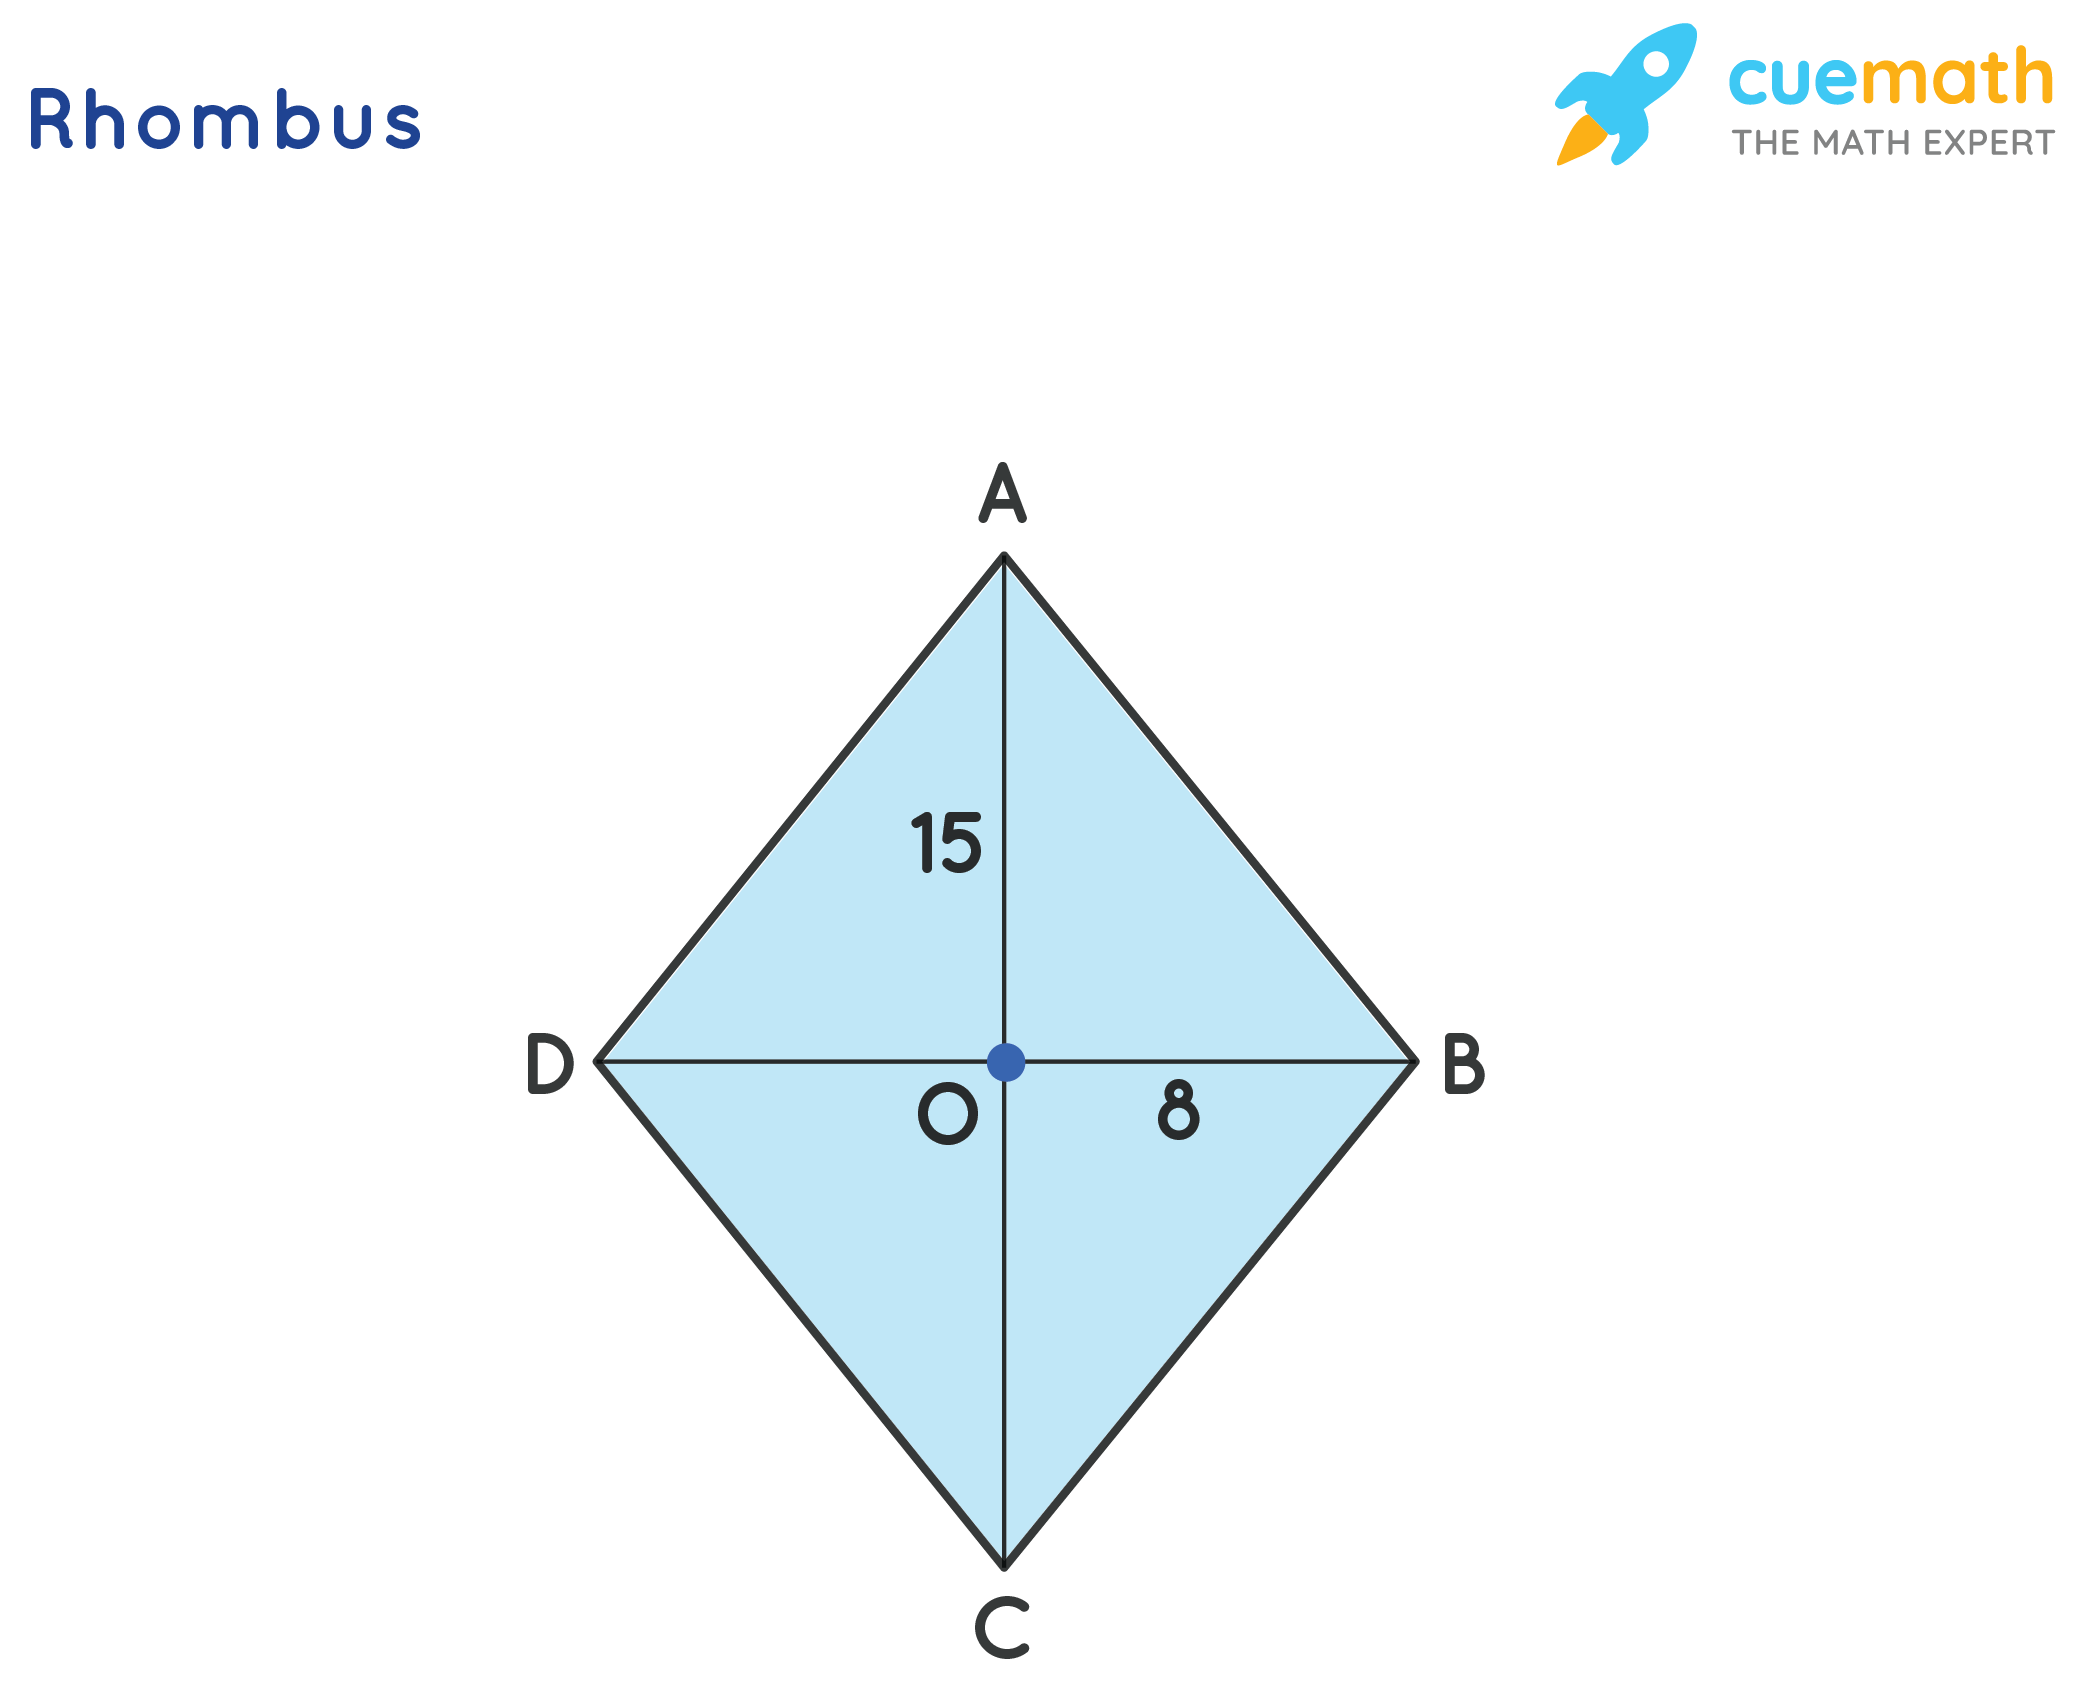 A rhombus whose diagonals are 16 and 30